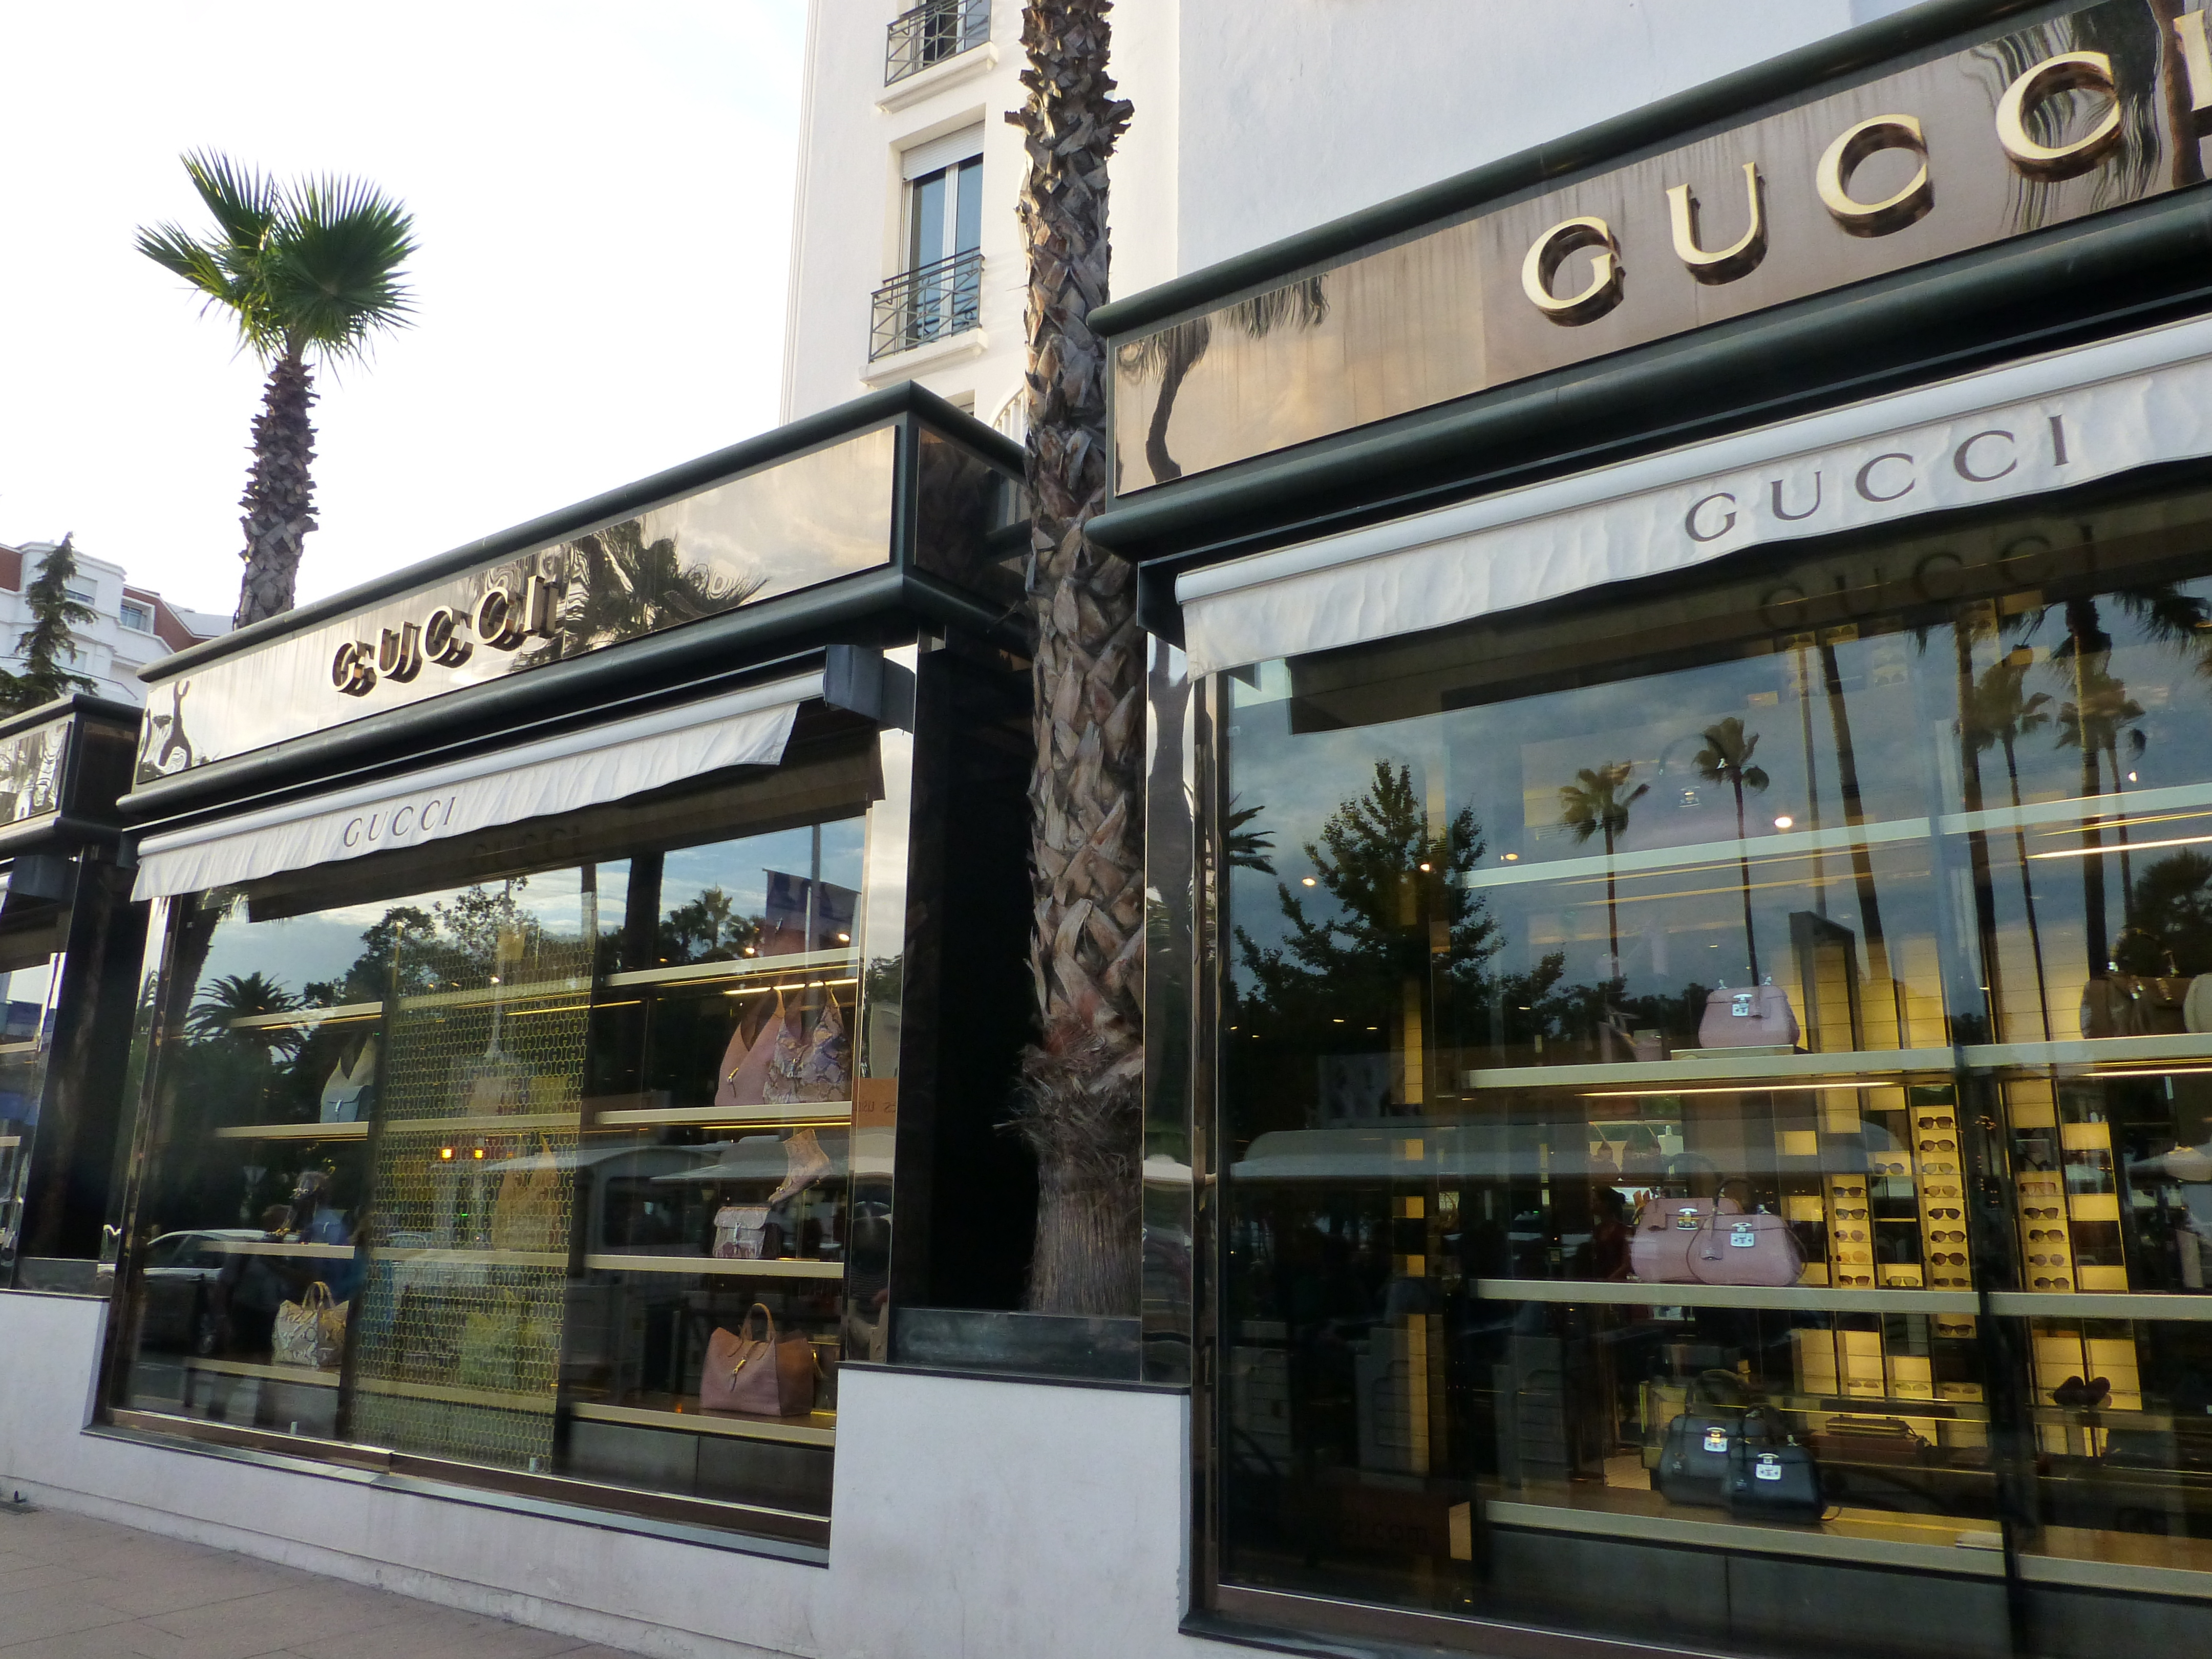 File Cannes - GUCCI - panoramio.jpg - Wikimedia Commons 65eb6f4dcc8